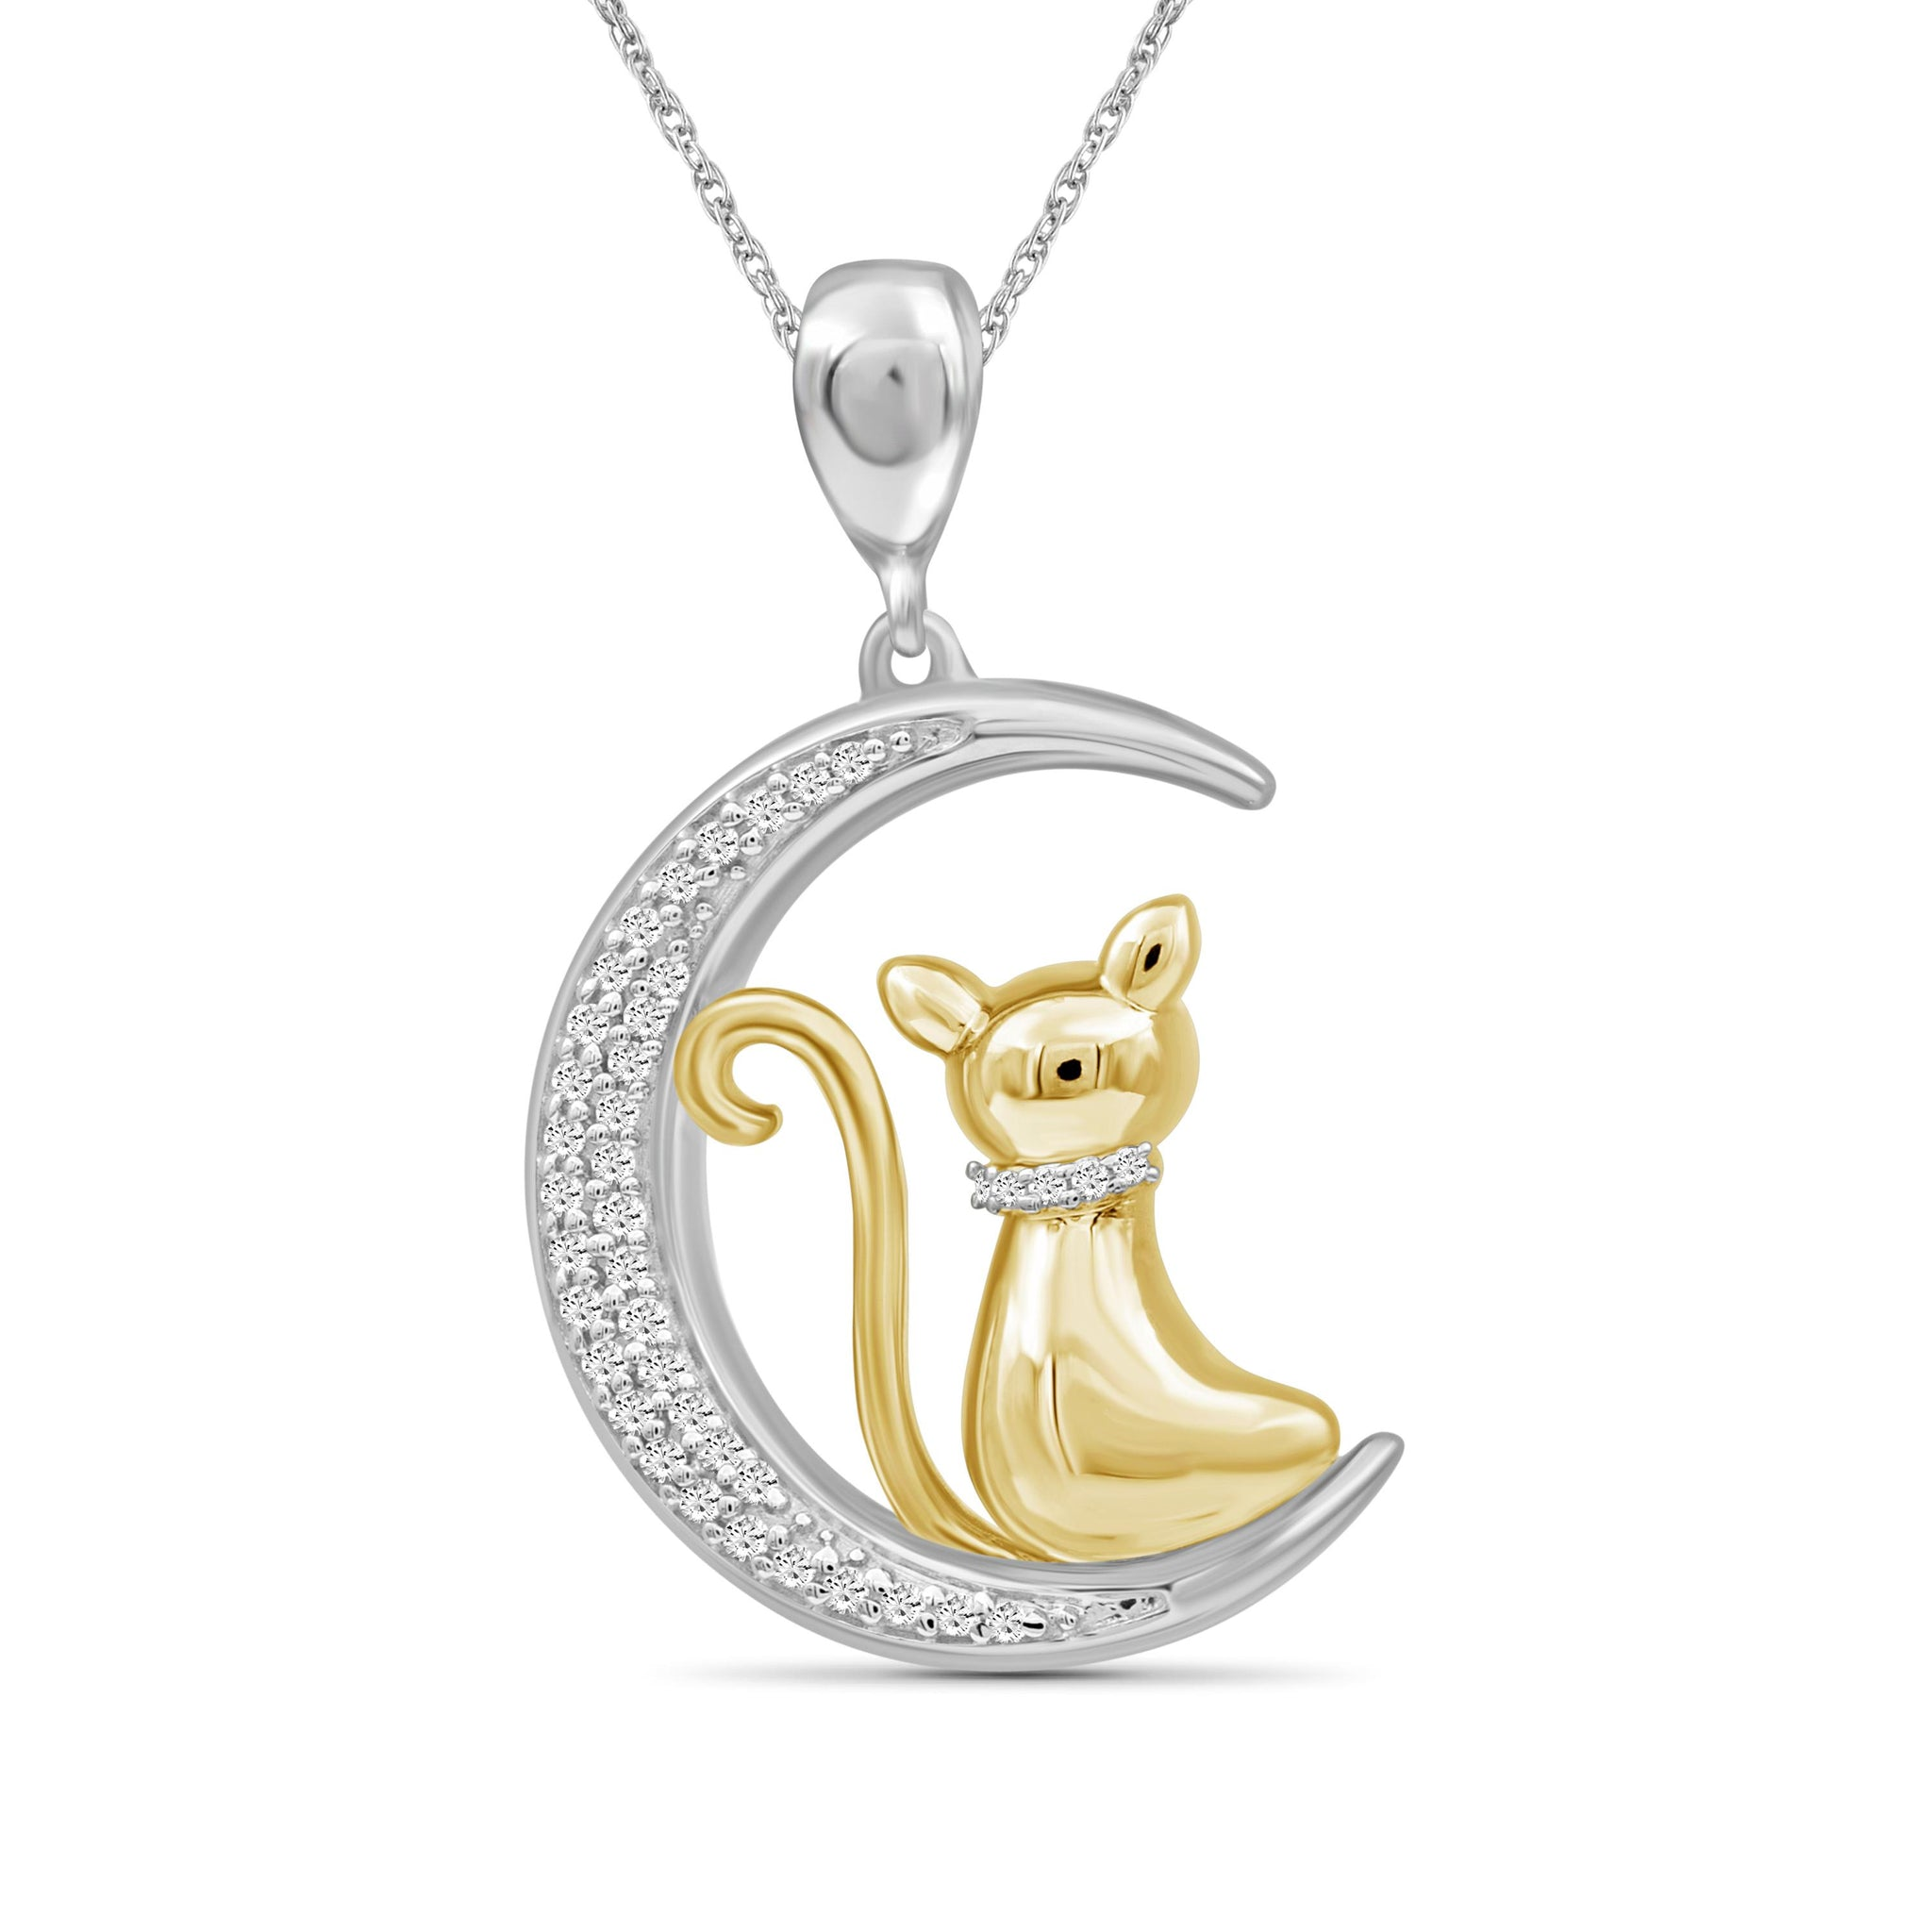 JewelonFire 1/7 Ctw White Diamond Two-Tone Sterling Silver Cat Moon Pendant